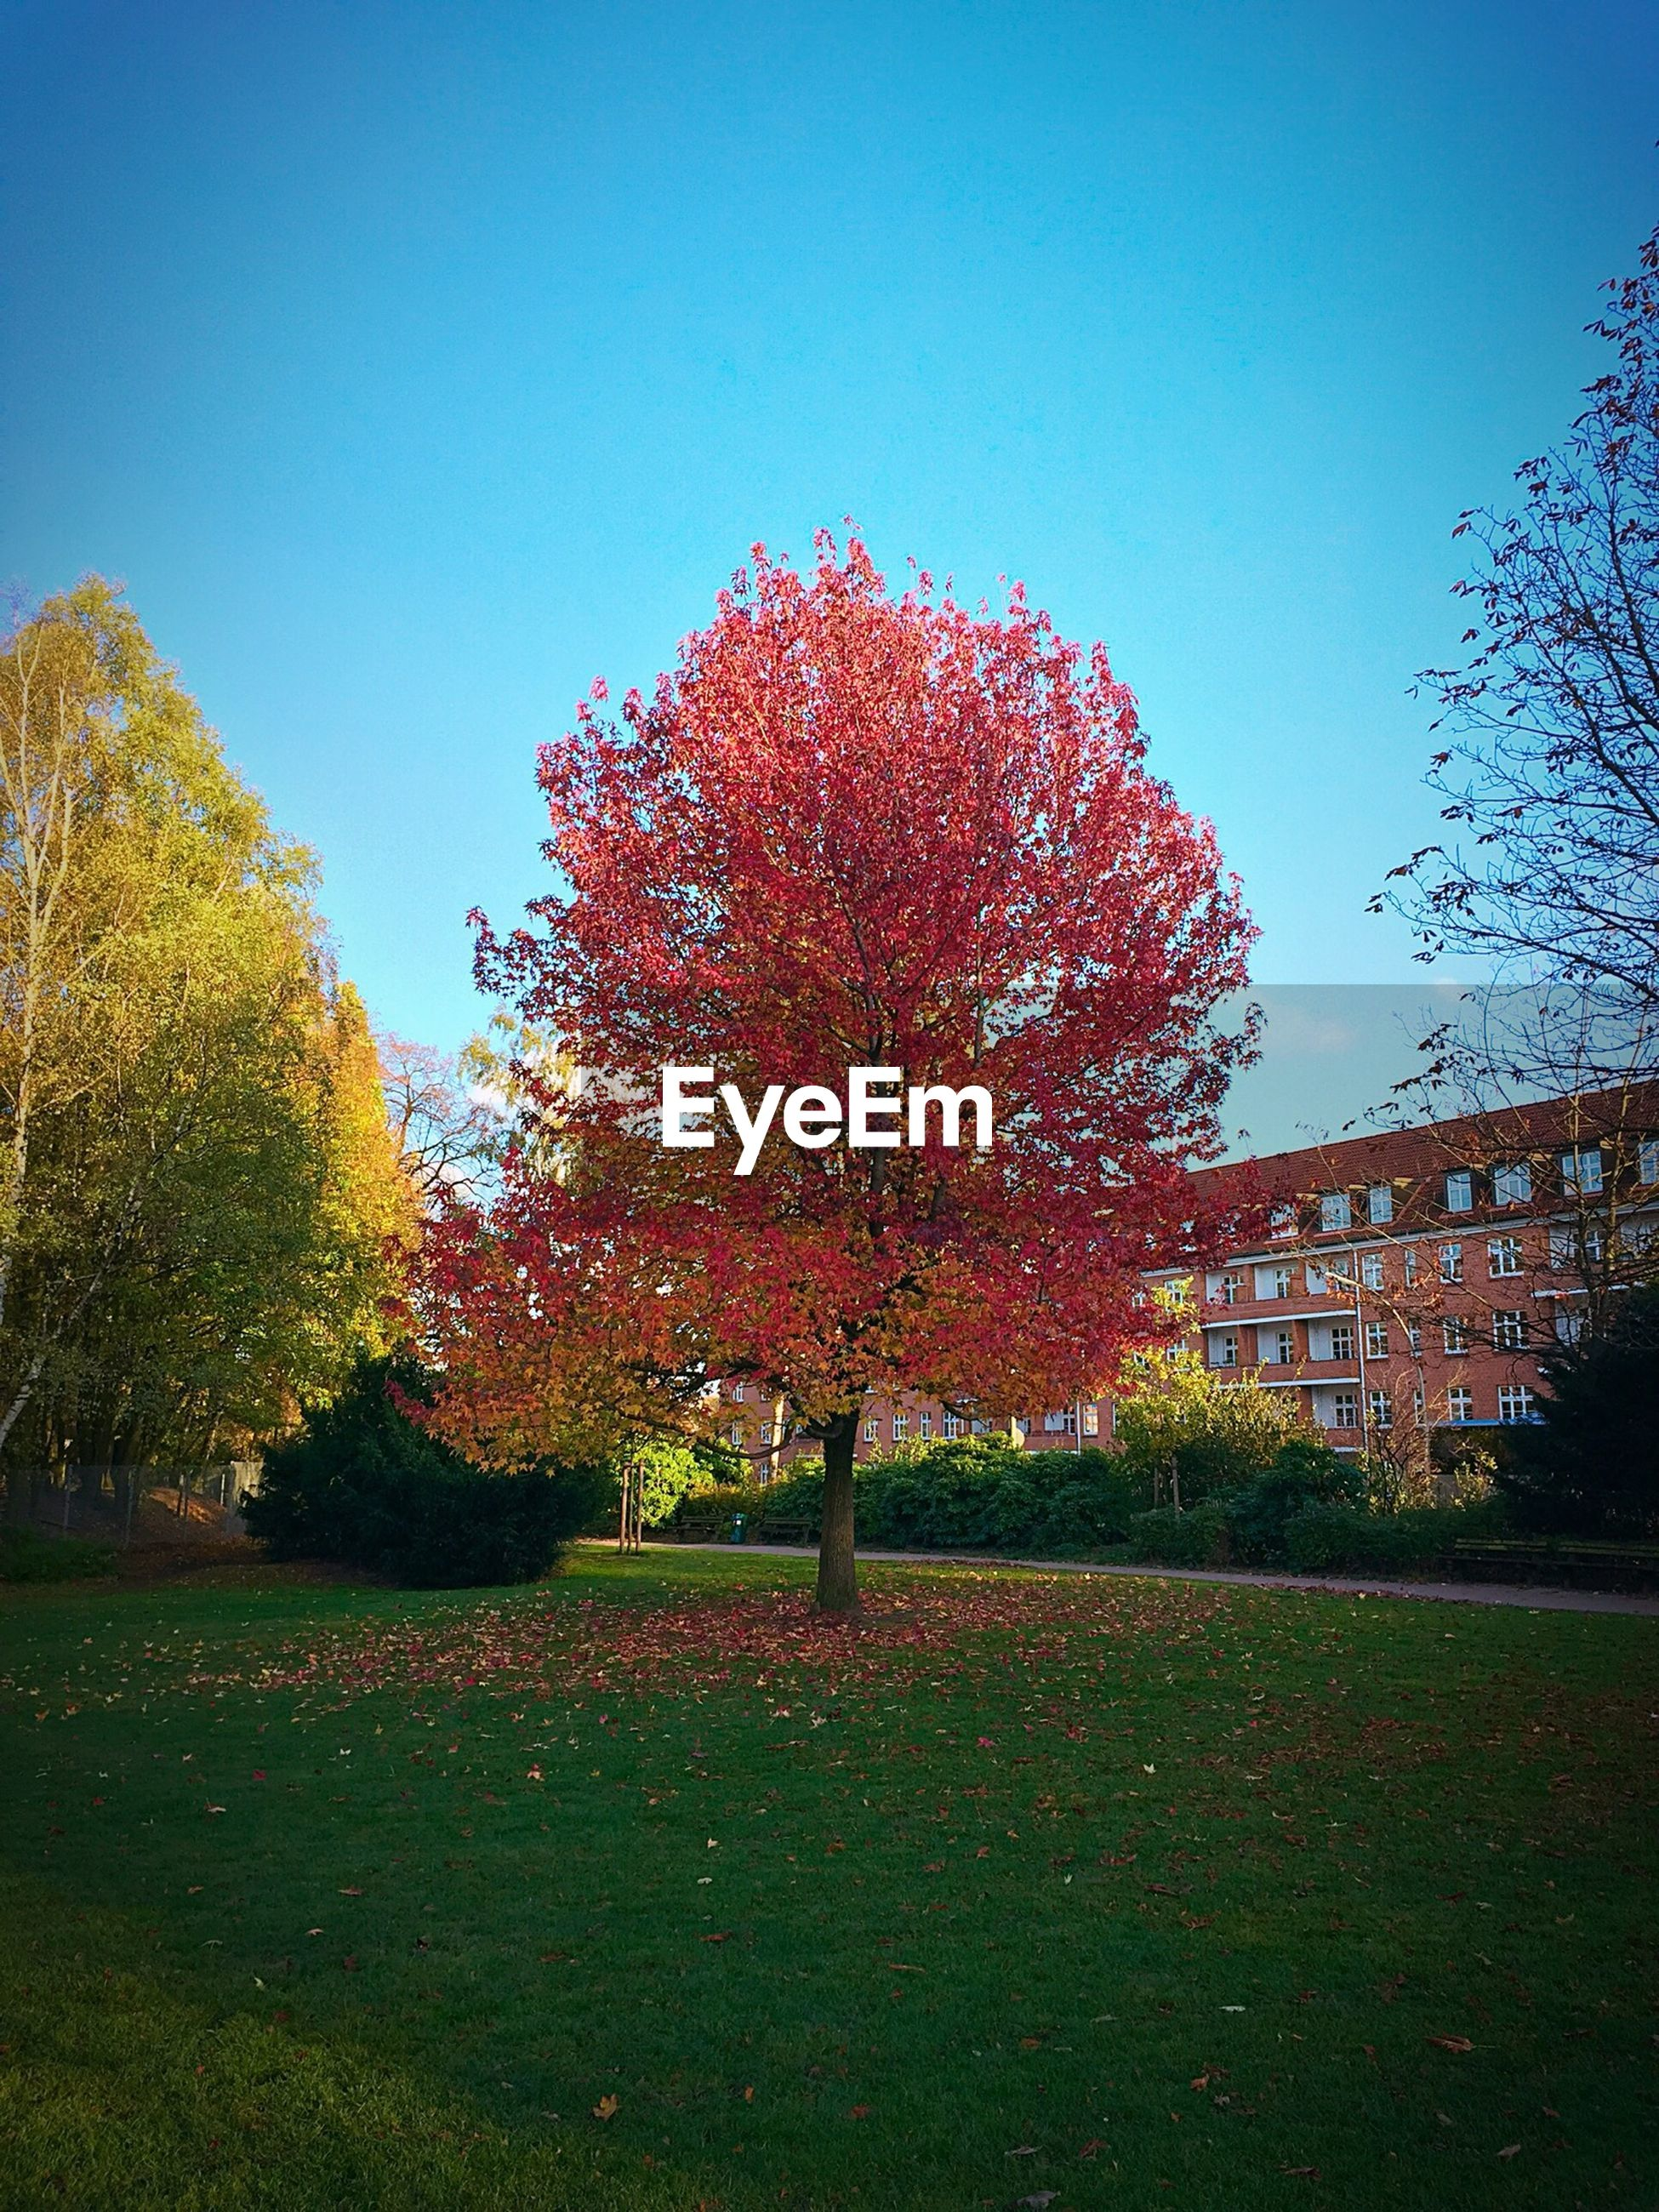 Autumn tree on grassy field by building against clear blue sky